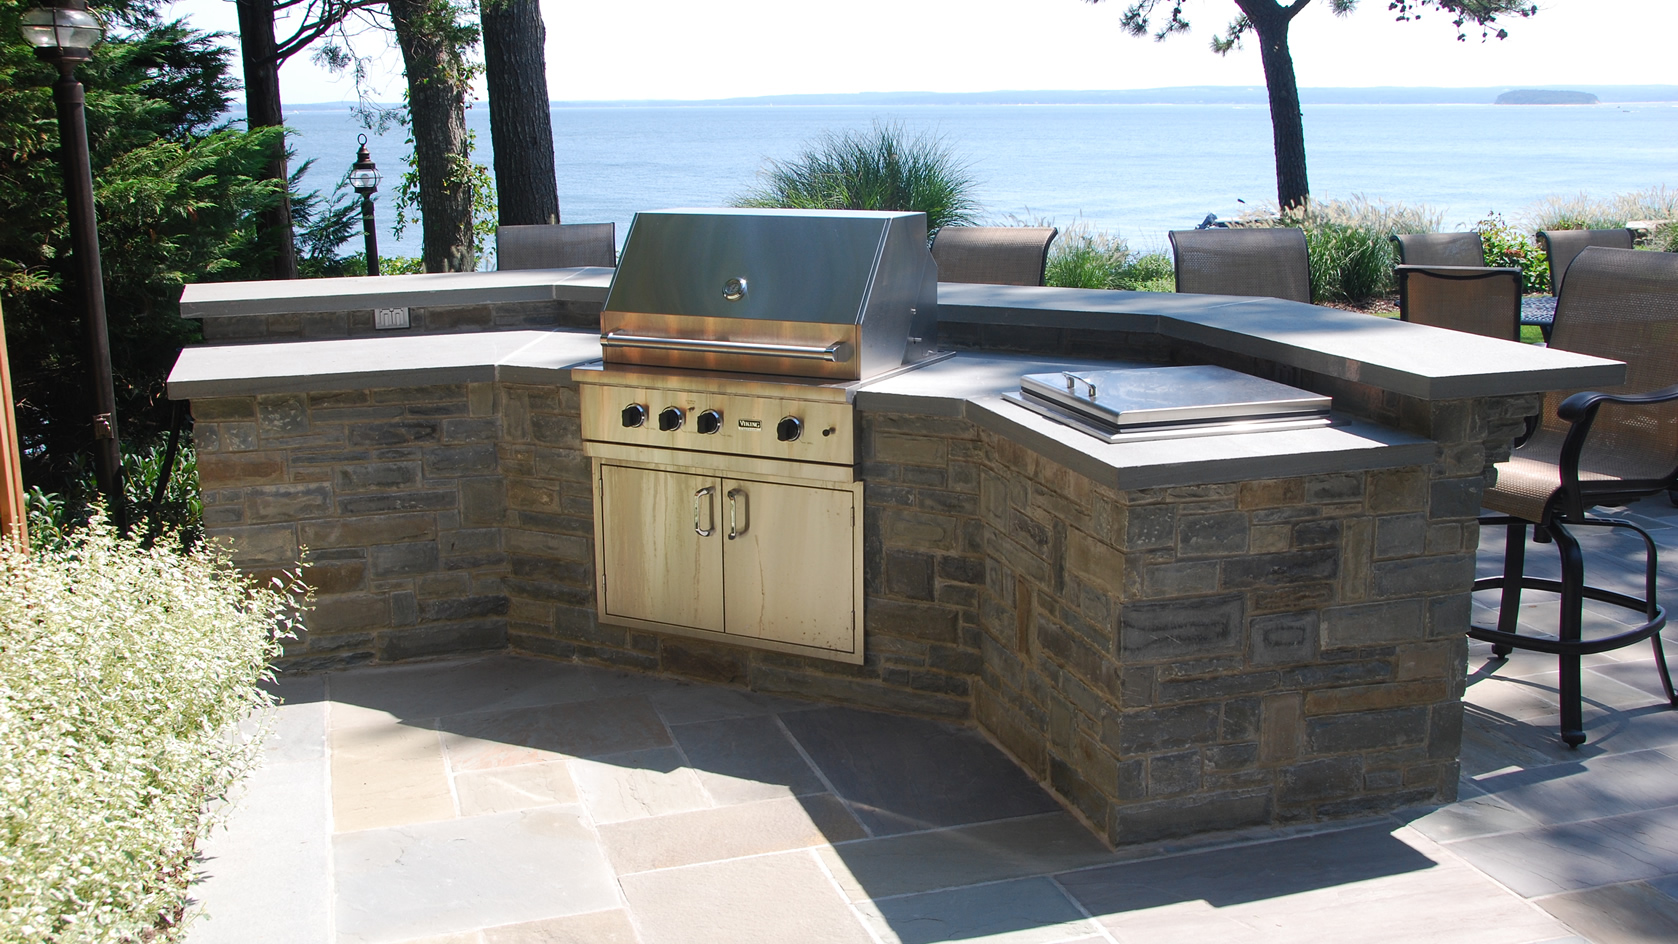 Blue Stone Countertop Outdoor Bbq Fireplaces Gray Masonry